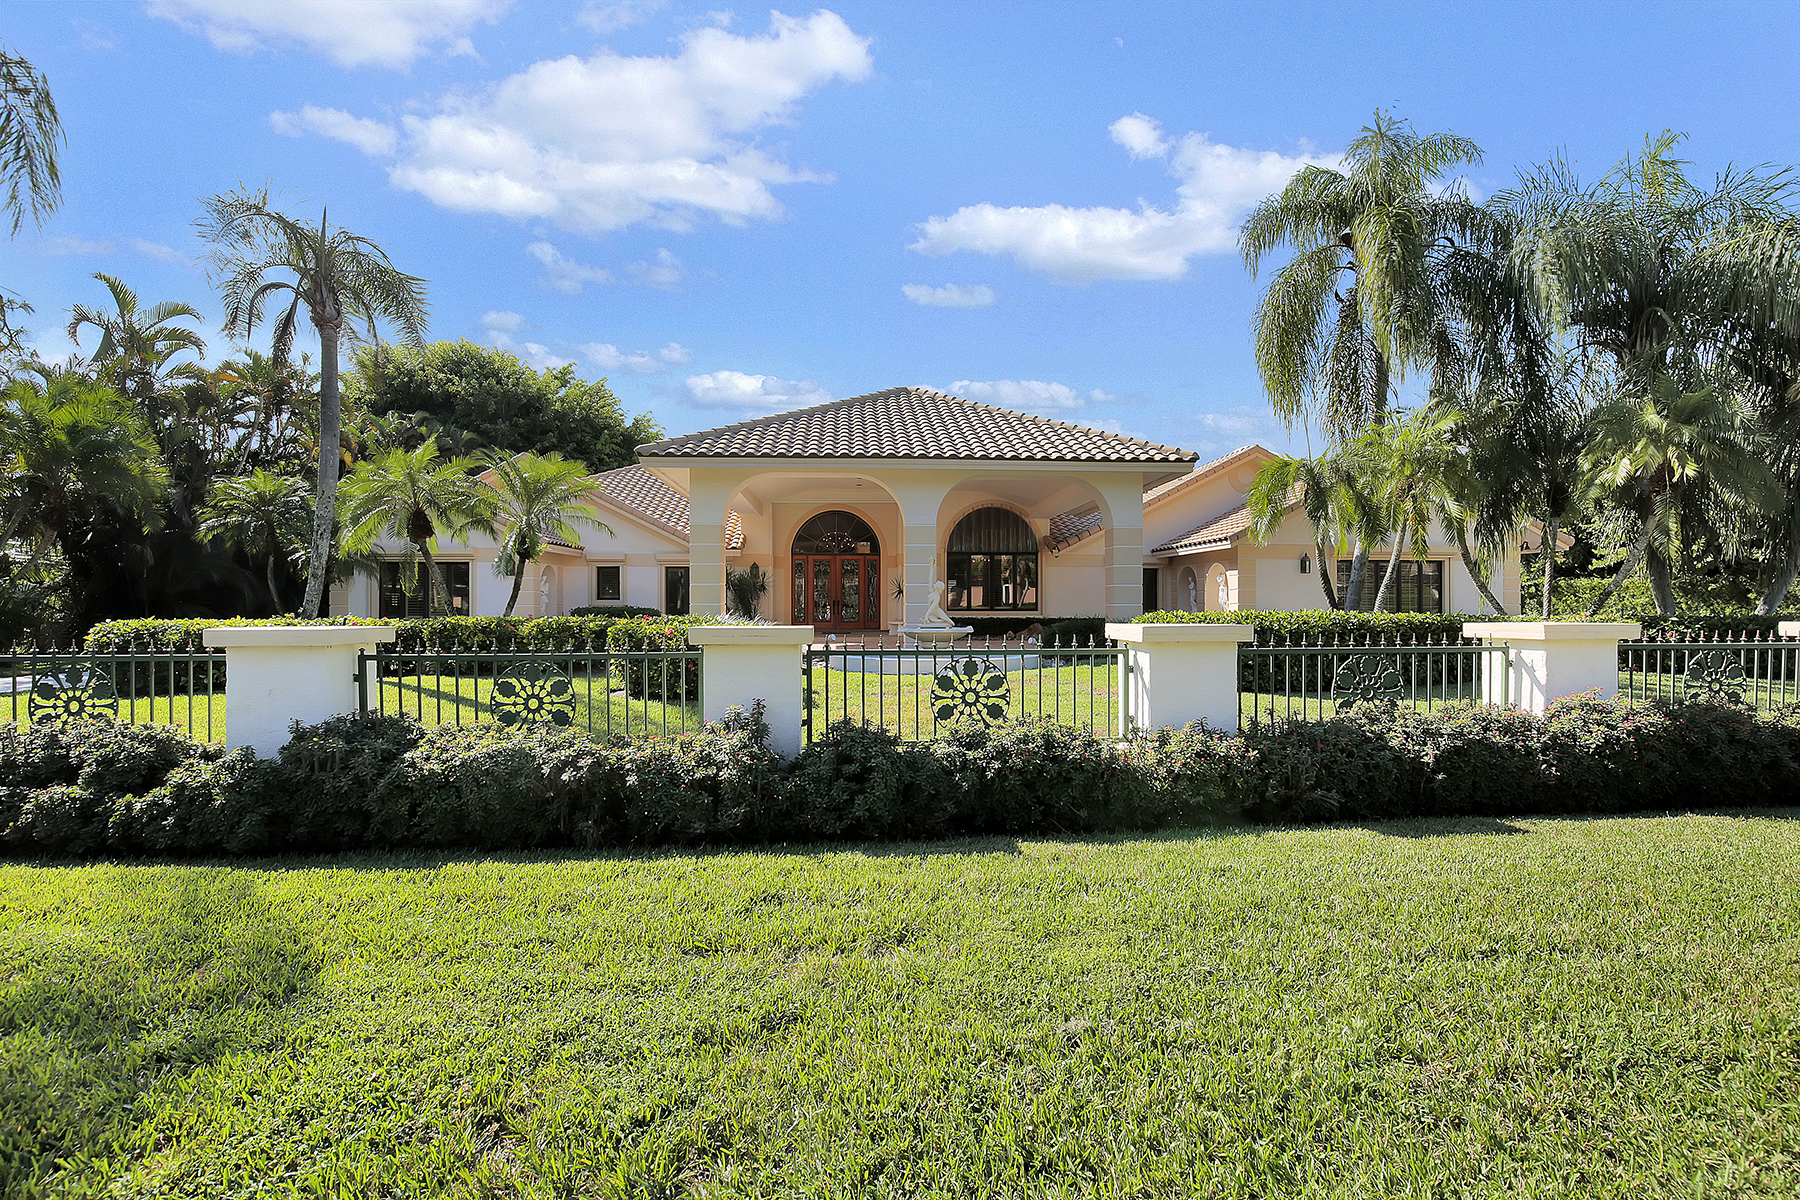 Single Family Home for Sale at QUAIL CREEK 4688 Oak Leaf Dr Quail Creek, Naples, Florida, 34119 United States